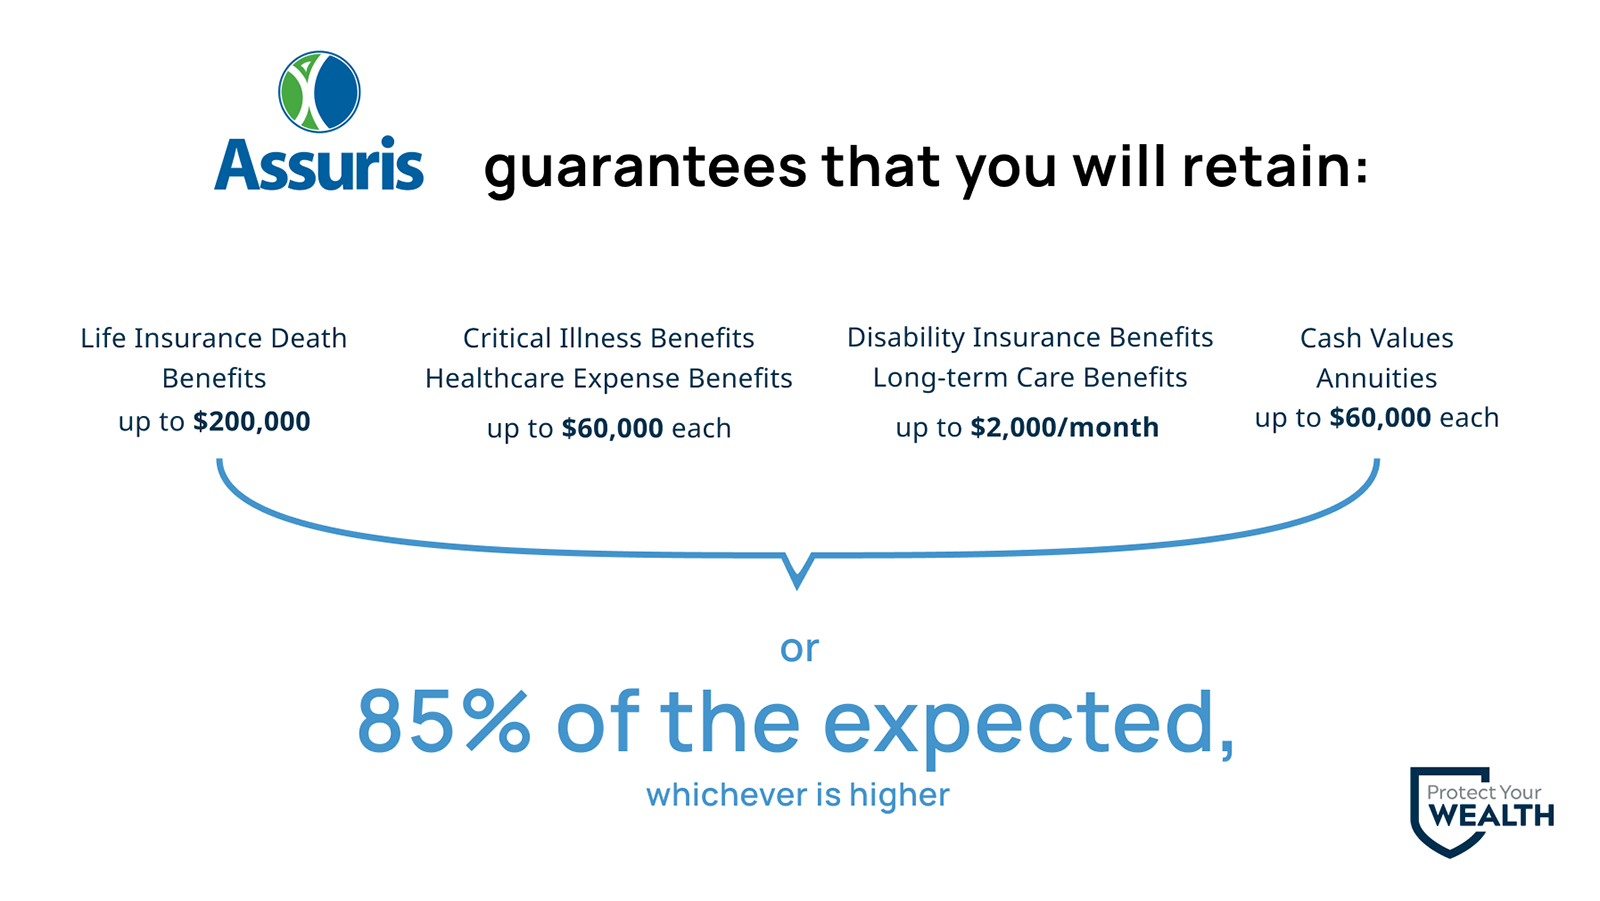 Assuris guarantees that you will retain at least 85% of your expected benefits and cash values in the event of your insurance company becoming insolvent.